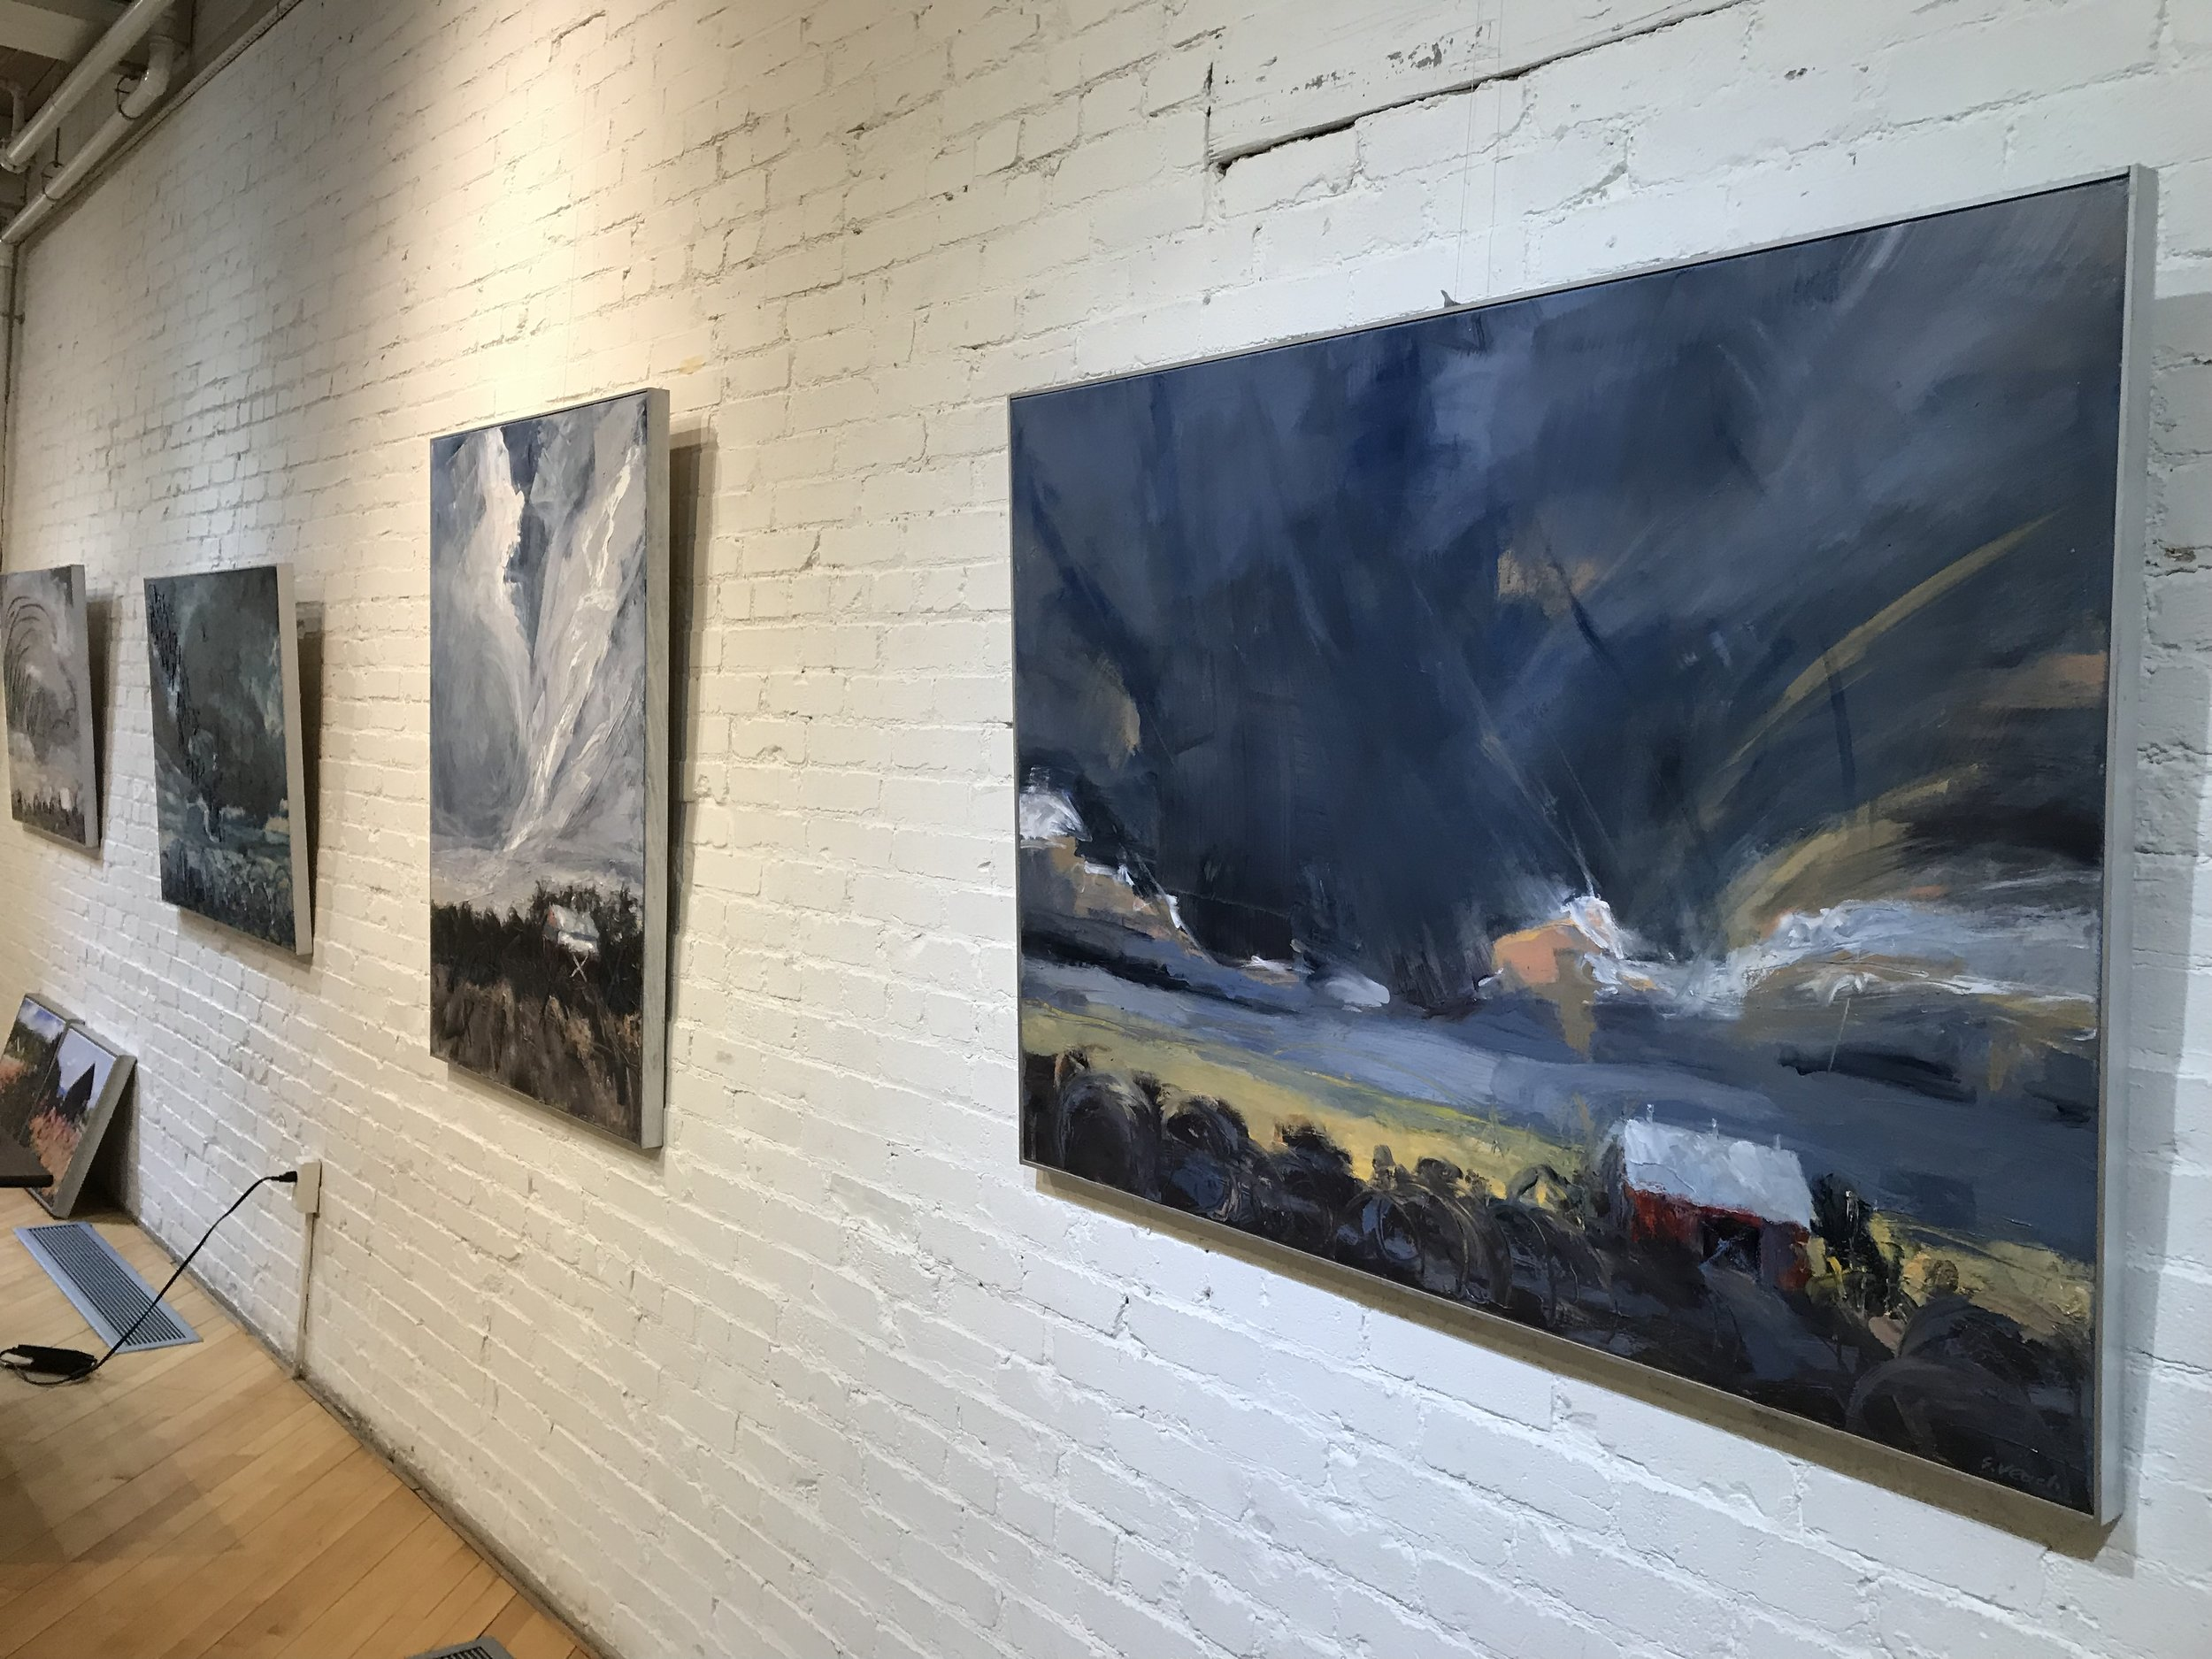 Sally Veach's Barns of Shenandoah exhibit at The Delaplaine